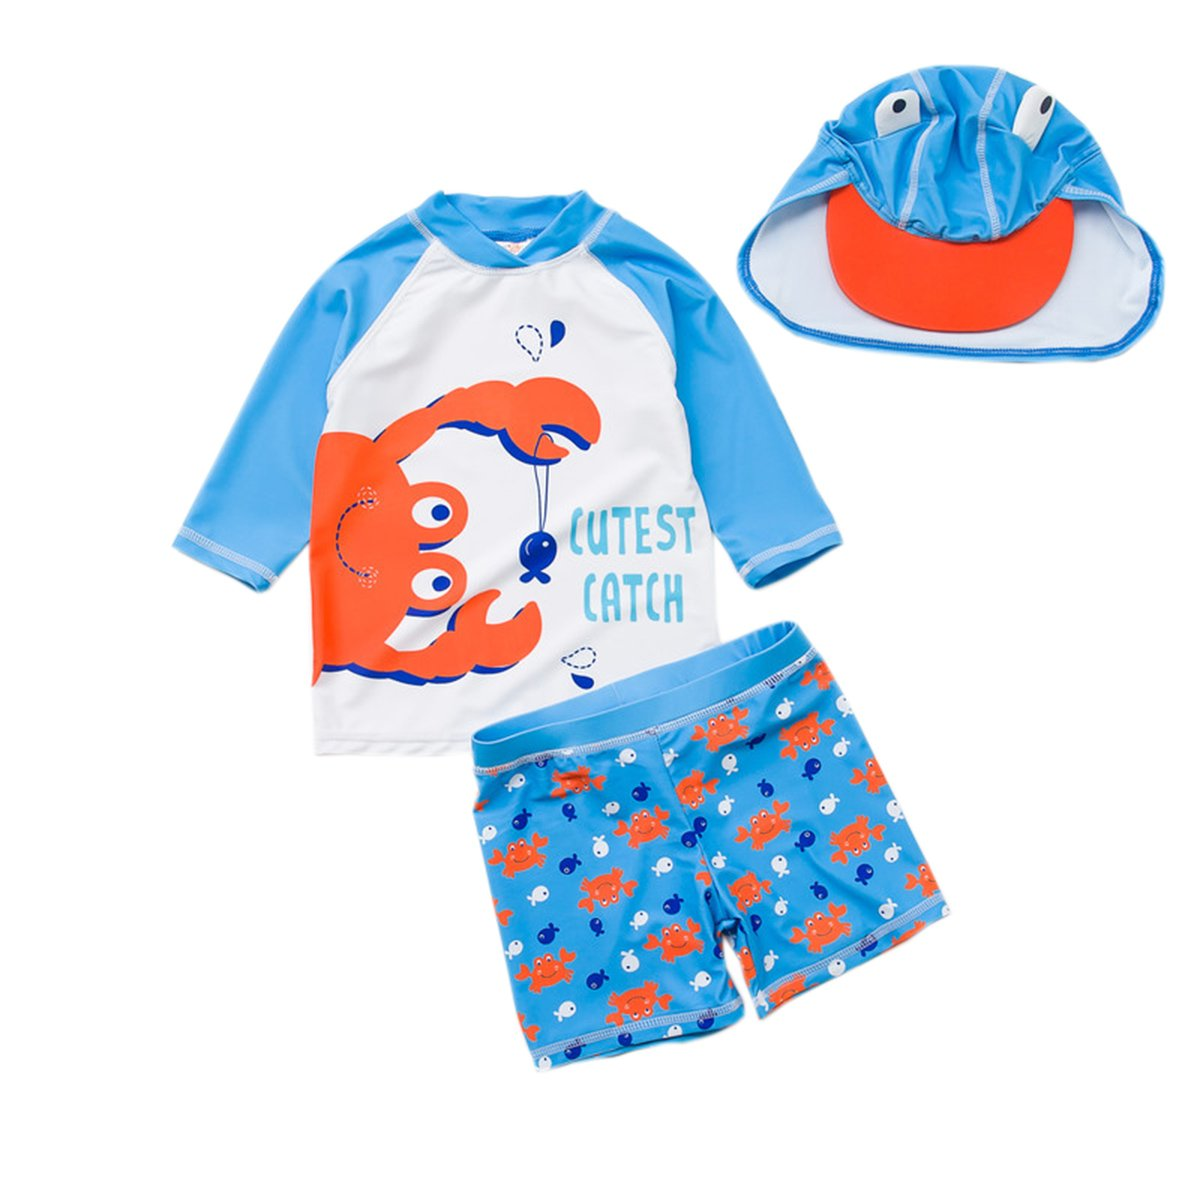 TAIYCYXGAN Baby Toddler Boys Two Pieces Swimsuit Set Boys Long Sleeve Crab Bathing Suit Rash Guards With Hat UPF 50+